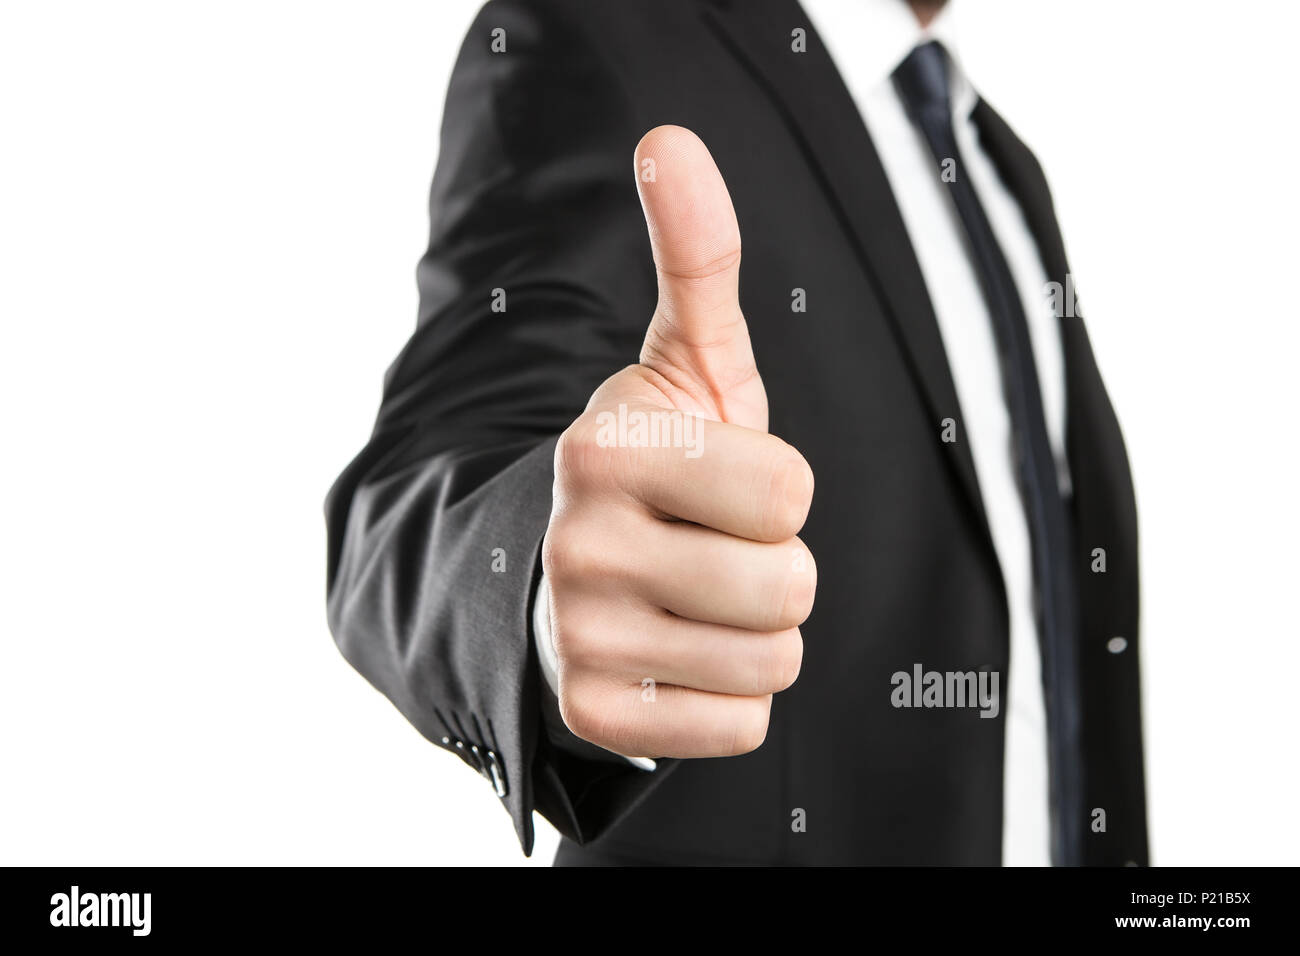 Thumbs up! - Stock Image